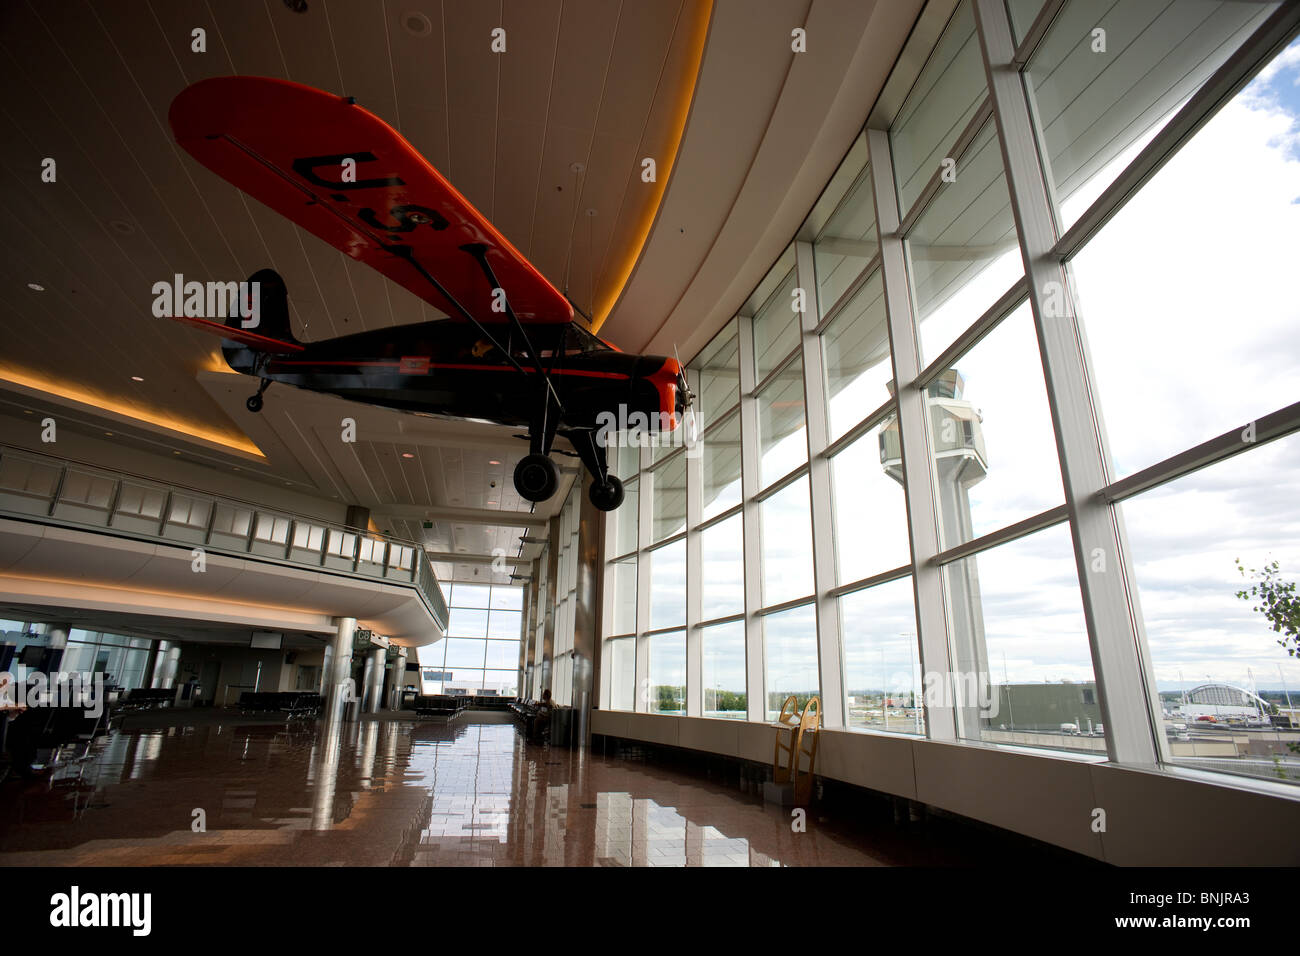 Prop Plane Hanging From The Ceiling Inside The Anchorage